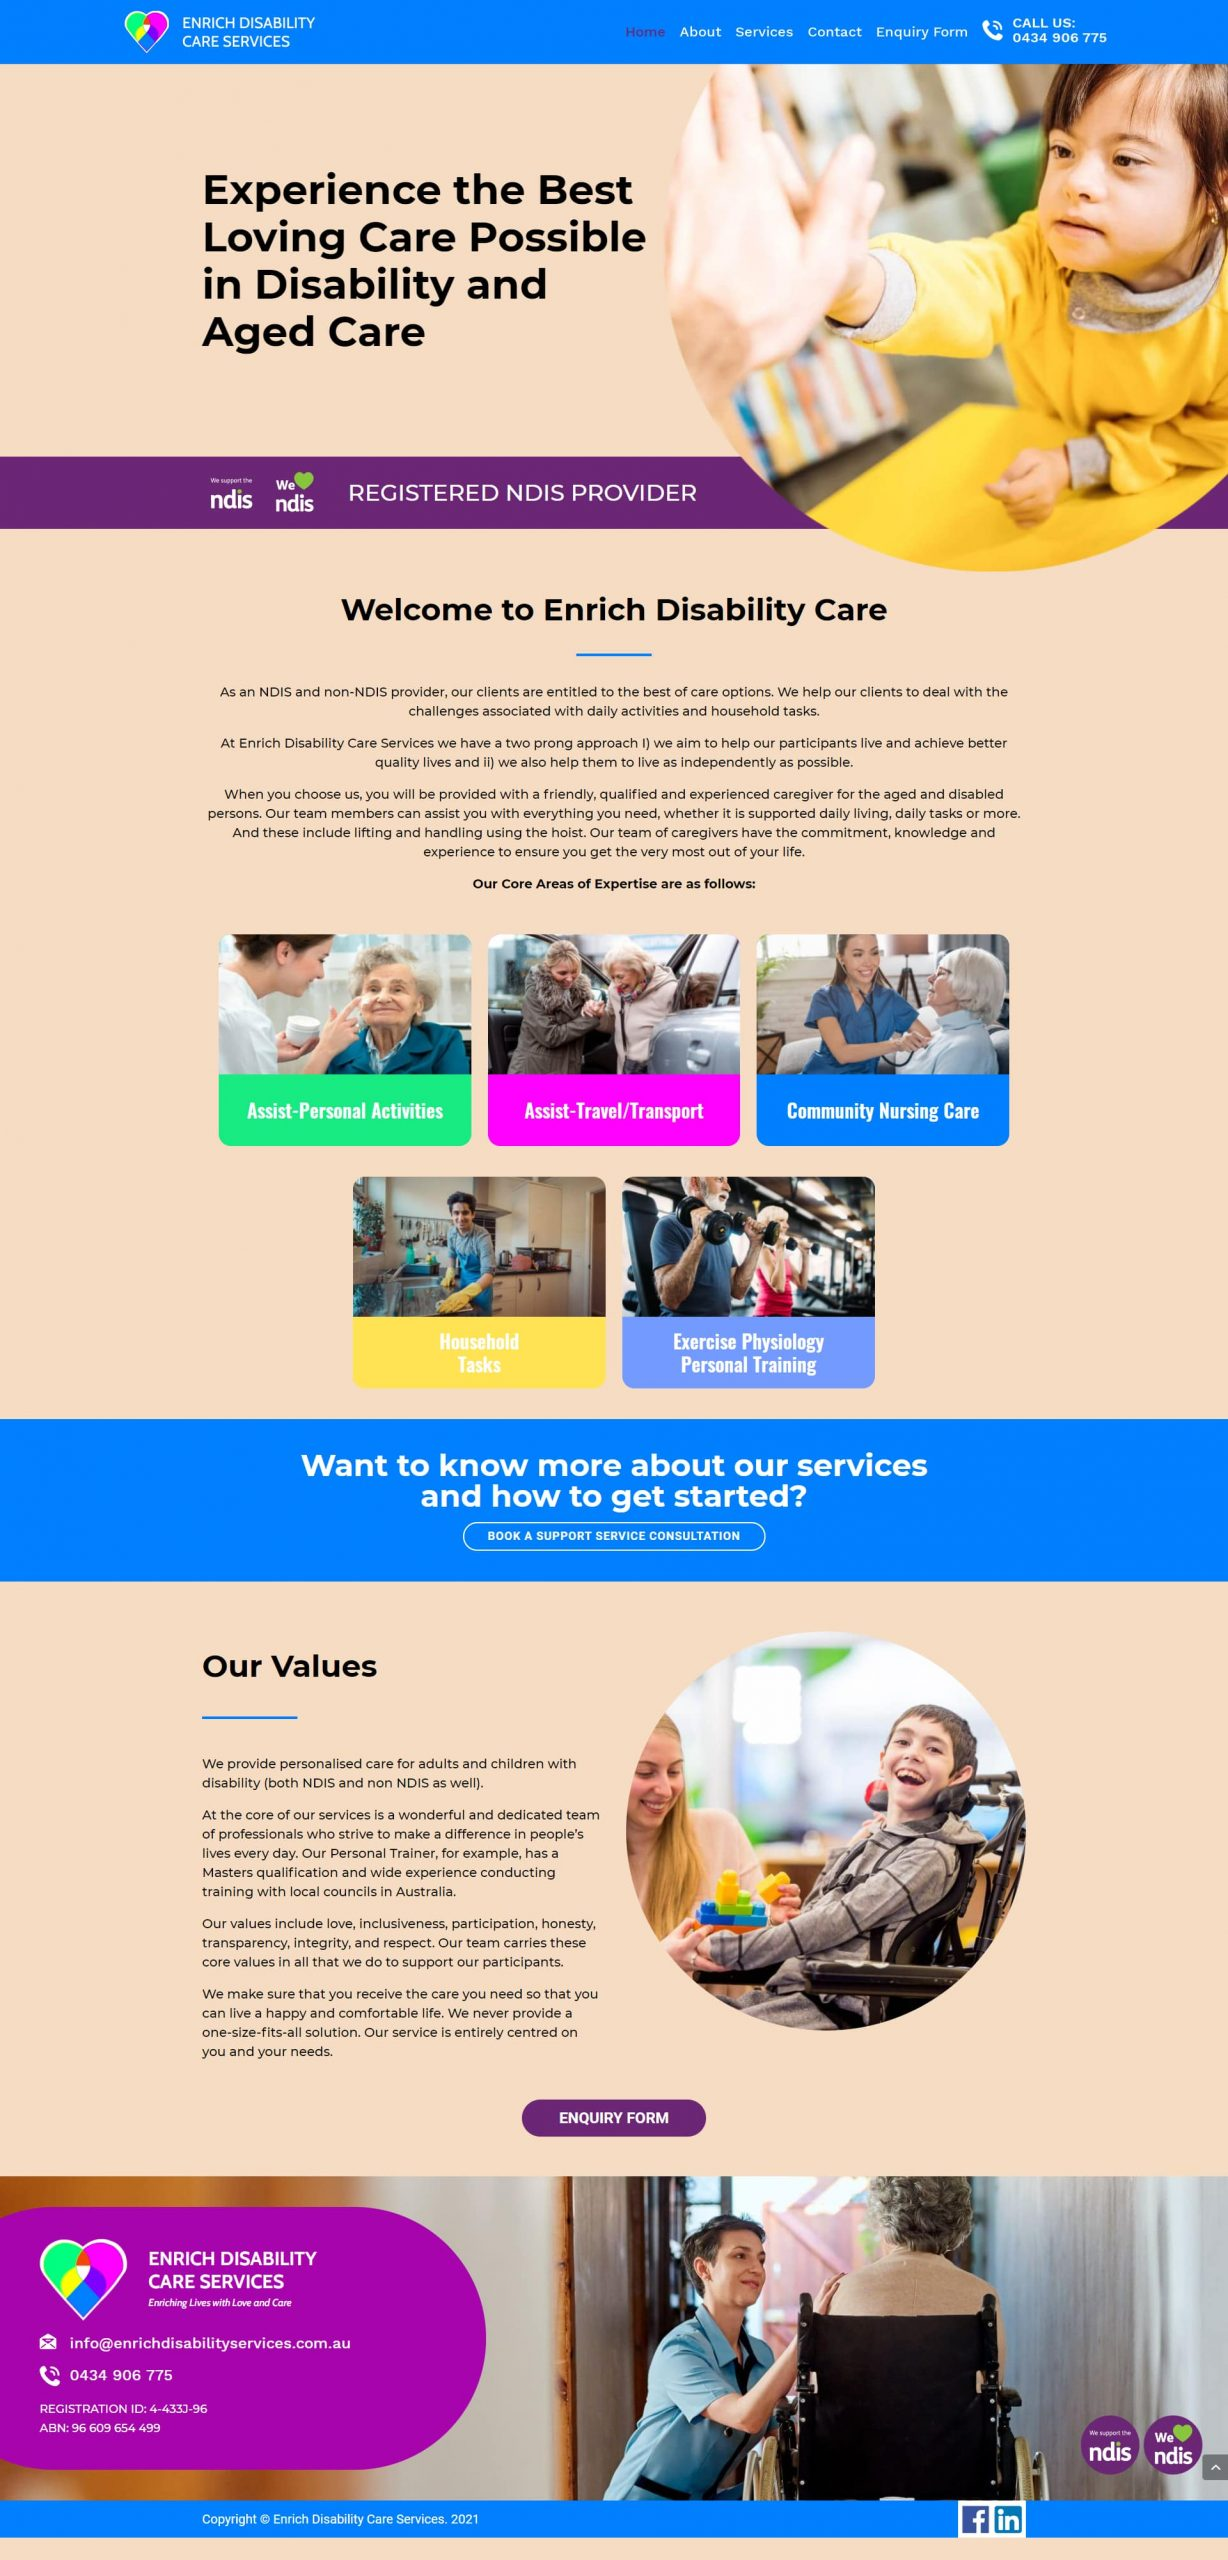 EnrichDisabilityServices Homepage